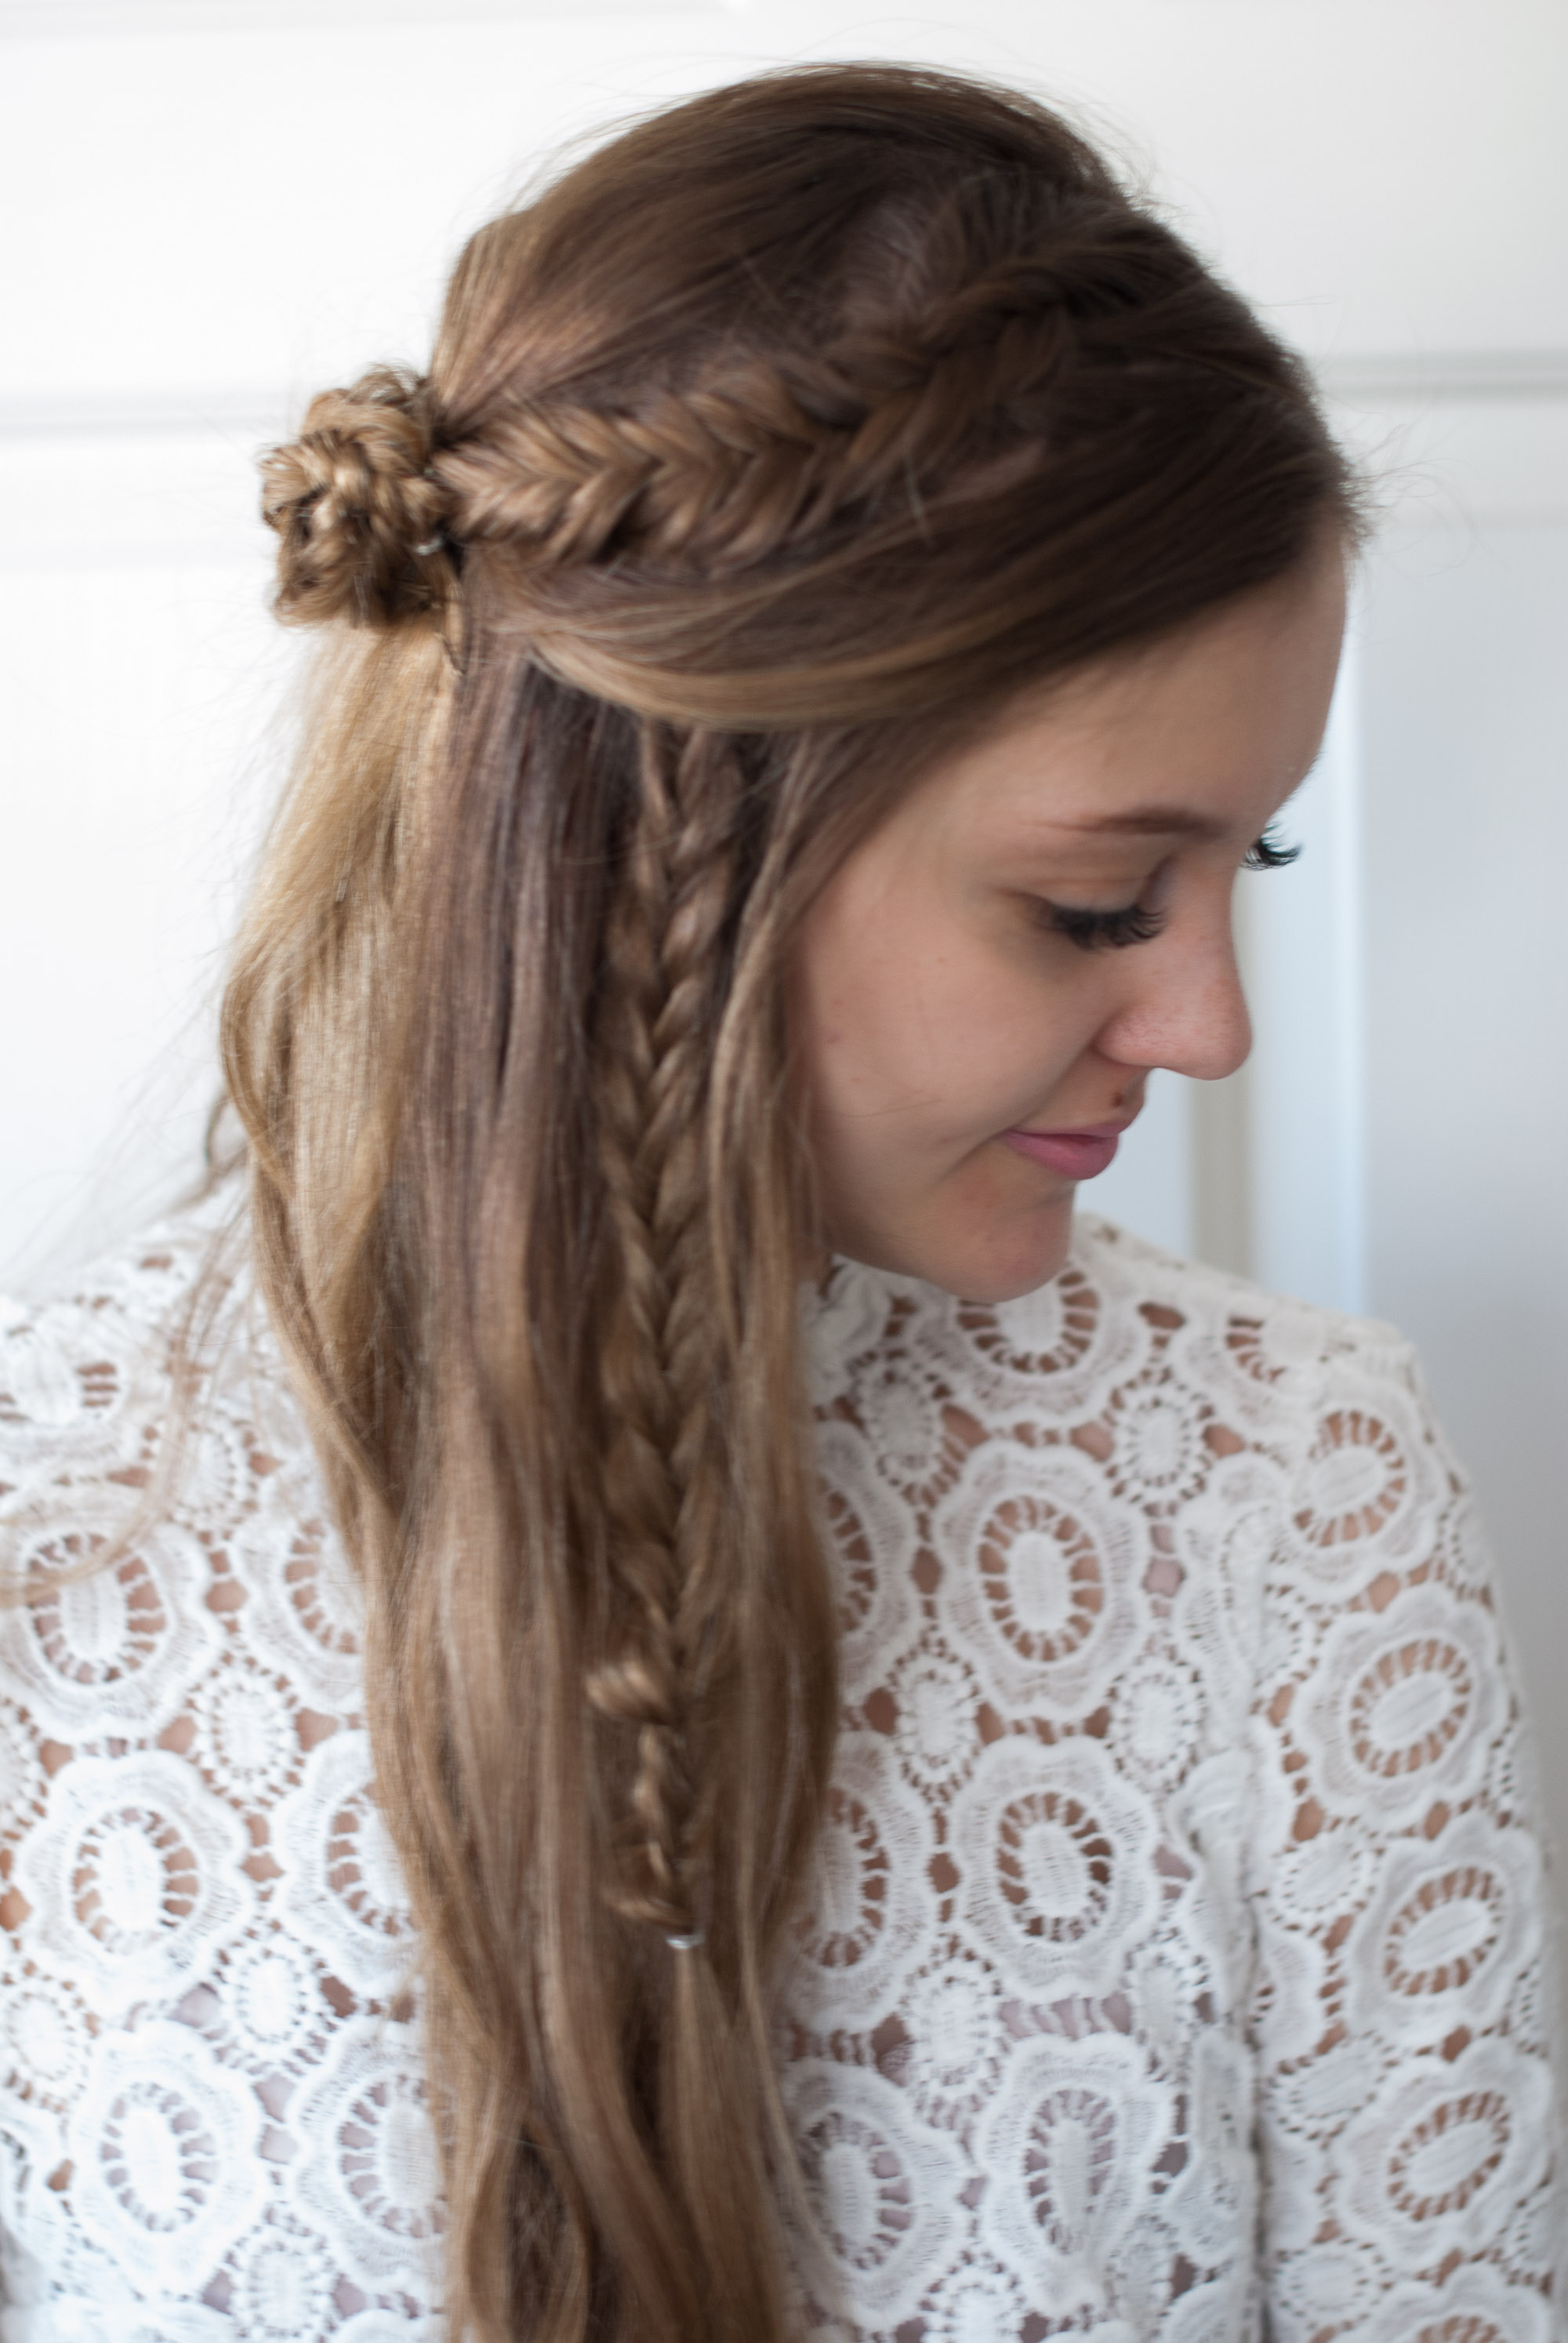 Hair Tutorial: Two Easy Side Braids to Try This Summer